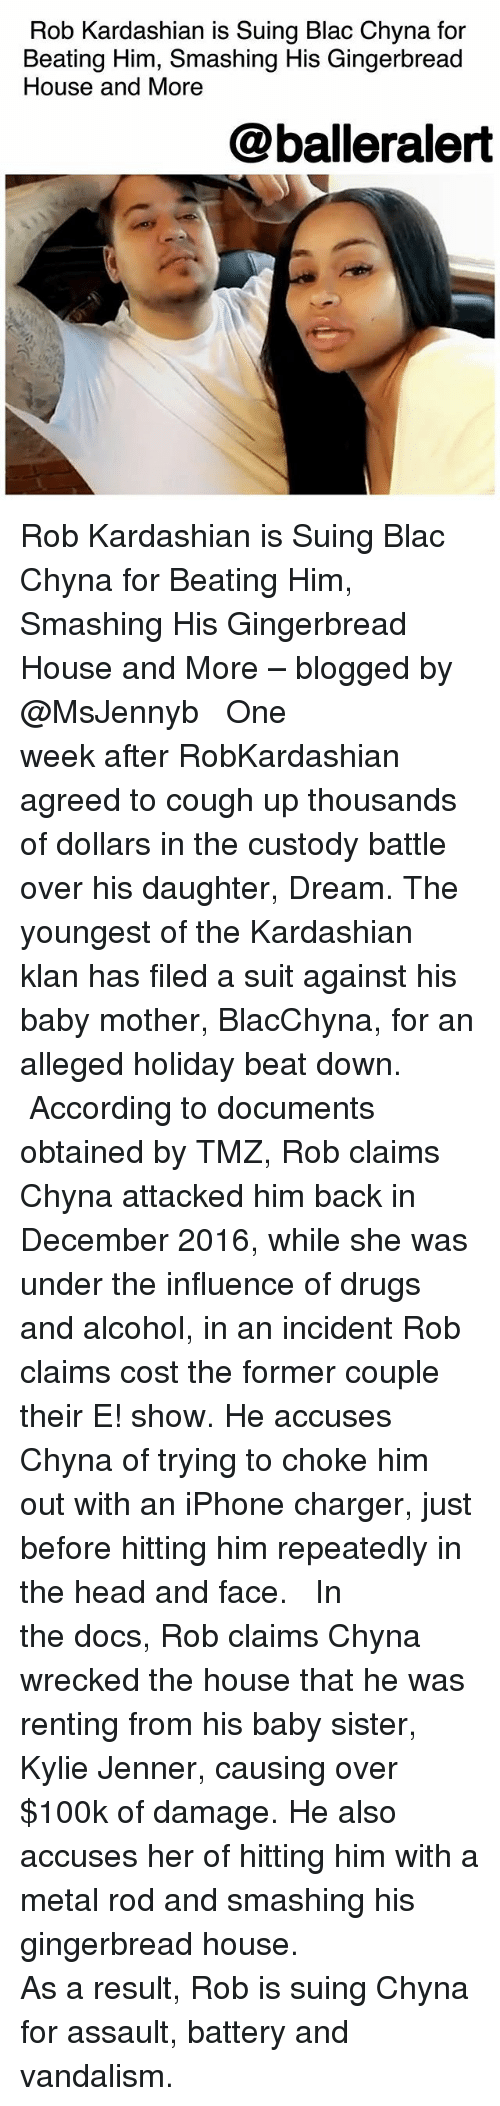 Blac Chyna, Drugs, and Head: Rob Kardashian is Suing Blac Chyna for  Beating Him, Smashing His Gingerbread  House and More  @balleralert Rob Kardashian is Suing Blac Chyna for Beating Him, Smashing His Gingerbread House and More – blogged by @MsJennyb ⠀⠀⠀⠀⠀⠀⠀ ⠀⠀⠀⠀⠀⠀⠀ One week after RobKardashian agreed to cough up thousands of dollars in the custody battle over his daughter, Dream. The youngest of the Kardashian klan has filed a suit against his baby mother, BlacChyna, for an alleged holiday beat down. ⠀⠀⠀⠀⠀⠀⠀ ⠀⠀⠀⠀⠀⠀⠀ According to documents obtained by TMZ, Rob claims Chyna attacked him back in December 2016, while she was under the influence of drugs and alcohol, in an incident Rob claims cost the former couple their E! show. He accuses Chyna of trying to choke him out with an iPhone charger, just before hitting him repeatedly in the head and face. ⠀⠀⠀⠀⠀⠀⠀ ⠀⠀⠀⠀⠀⠀⠀ In the docs, Rob claims Chyna wrecked the house that he was renting from his baby sister, Kylie Jenner, causing over $100k of damage. He also accuses her of hitting him with a metal rod and smashing his gingerbread house. ⠀⠀⠀⠀⠀⠀⠀ ⠀⠀⠀⠀⠀⠀⠀ As a result, Rob is suing Chyna for assault, battery and vandalism.